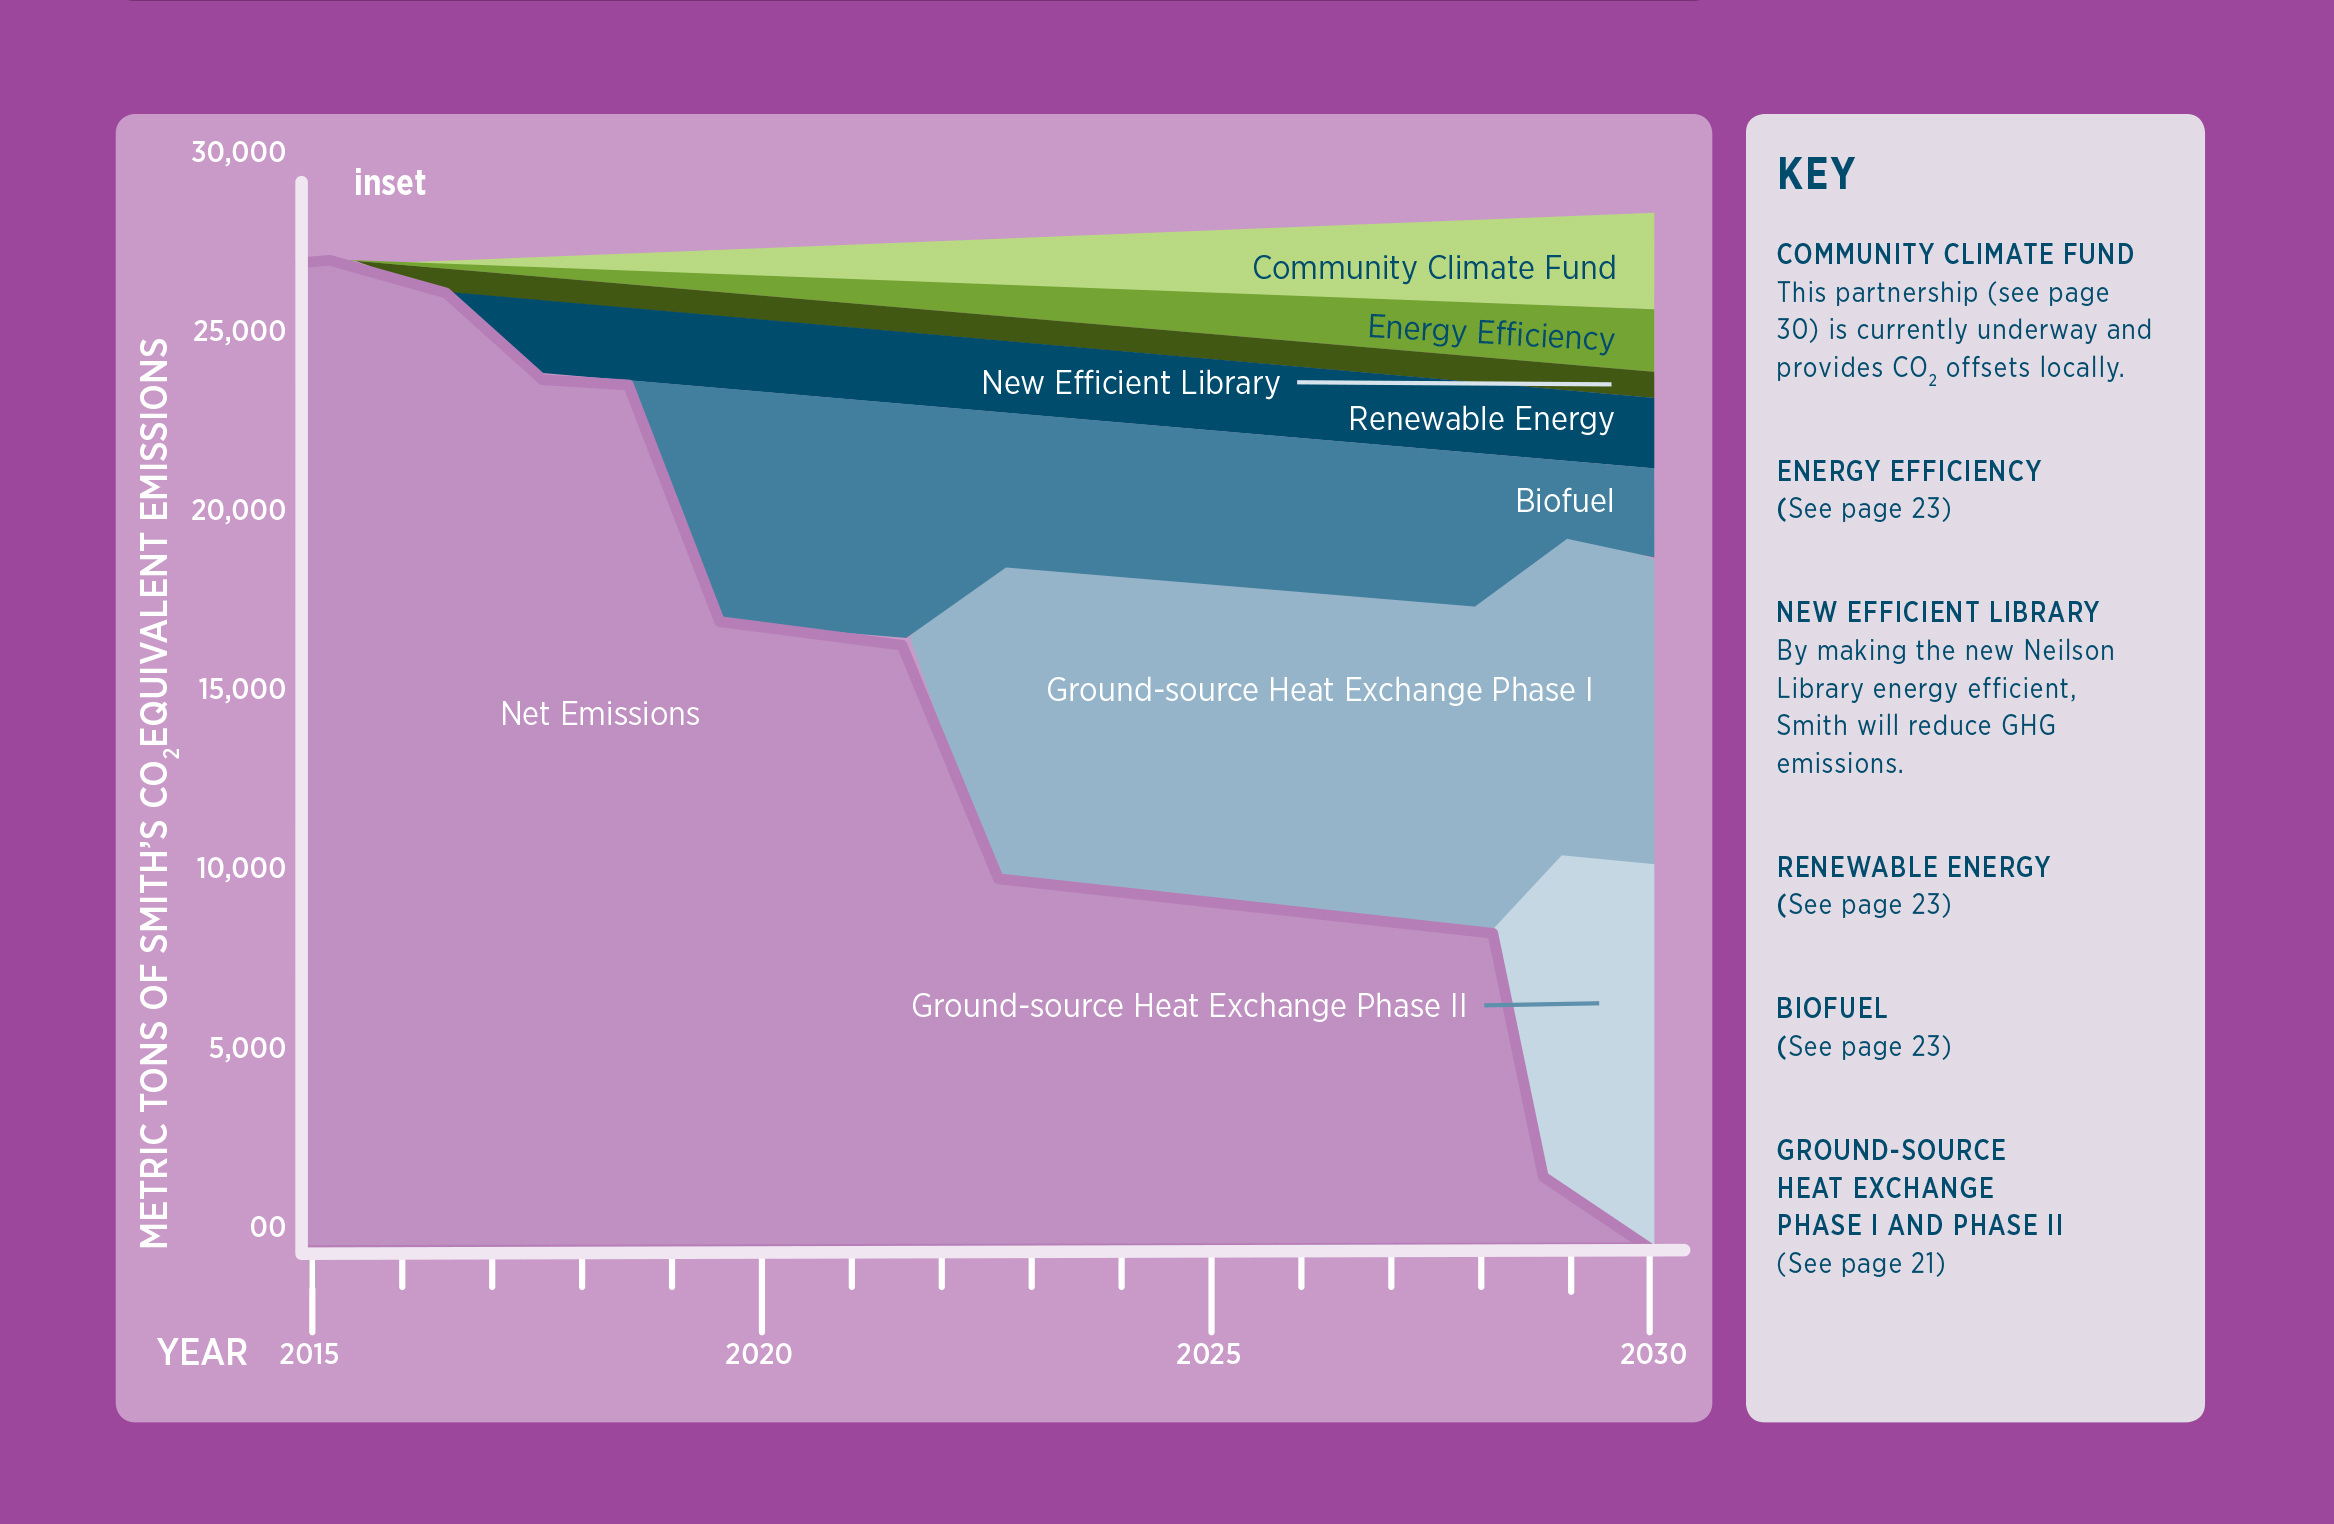 Chart showing metric tons of Smith's C02 emissions by 2030